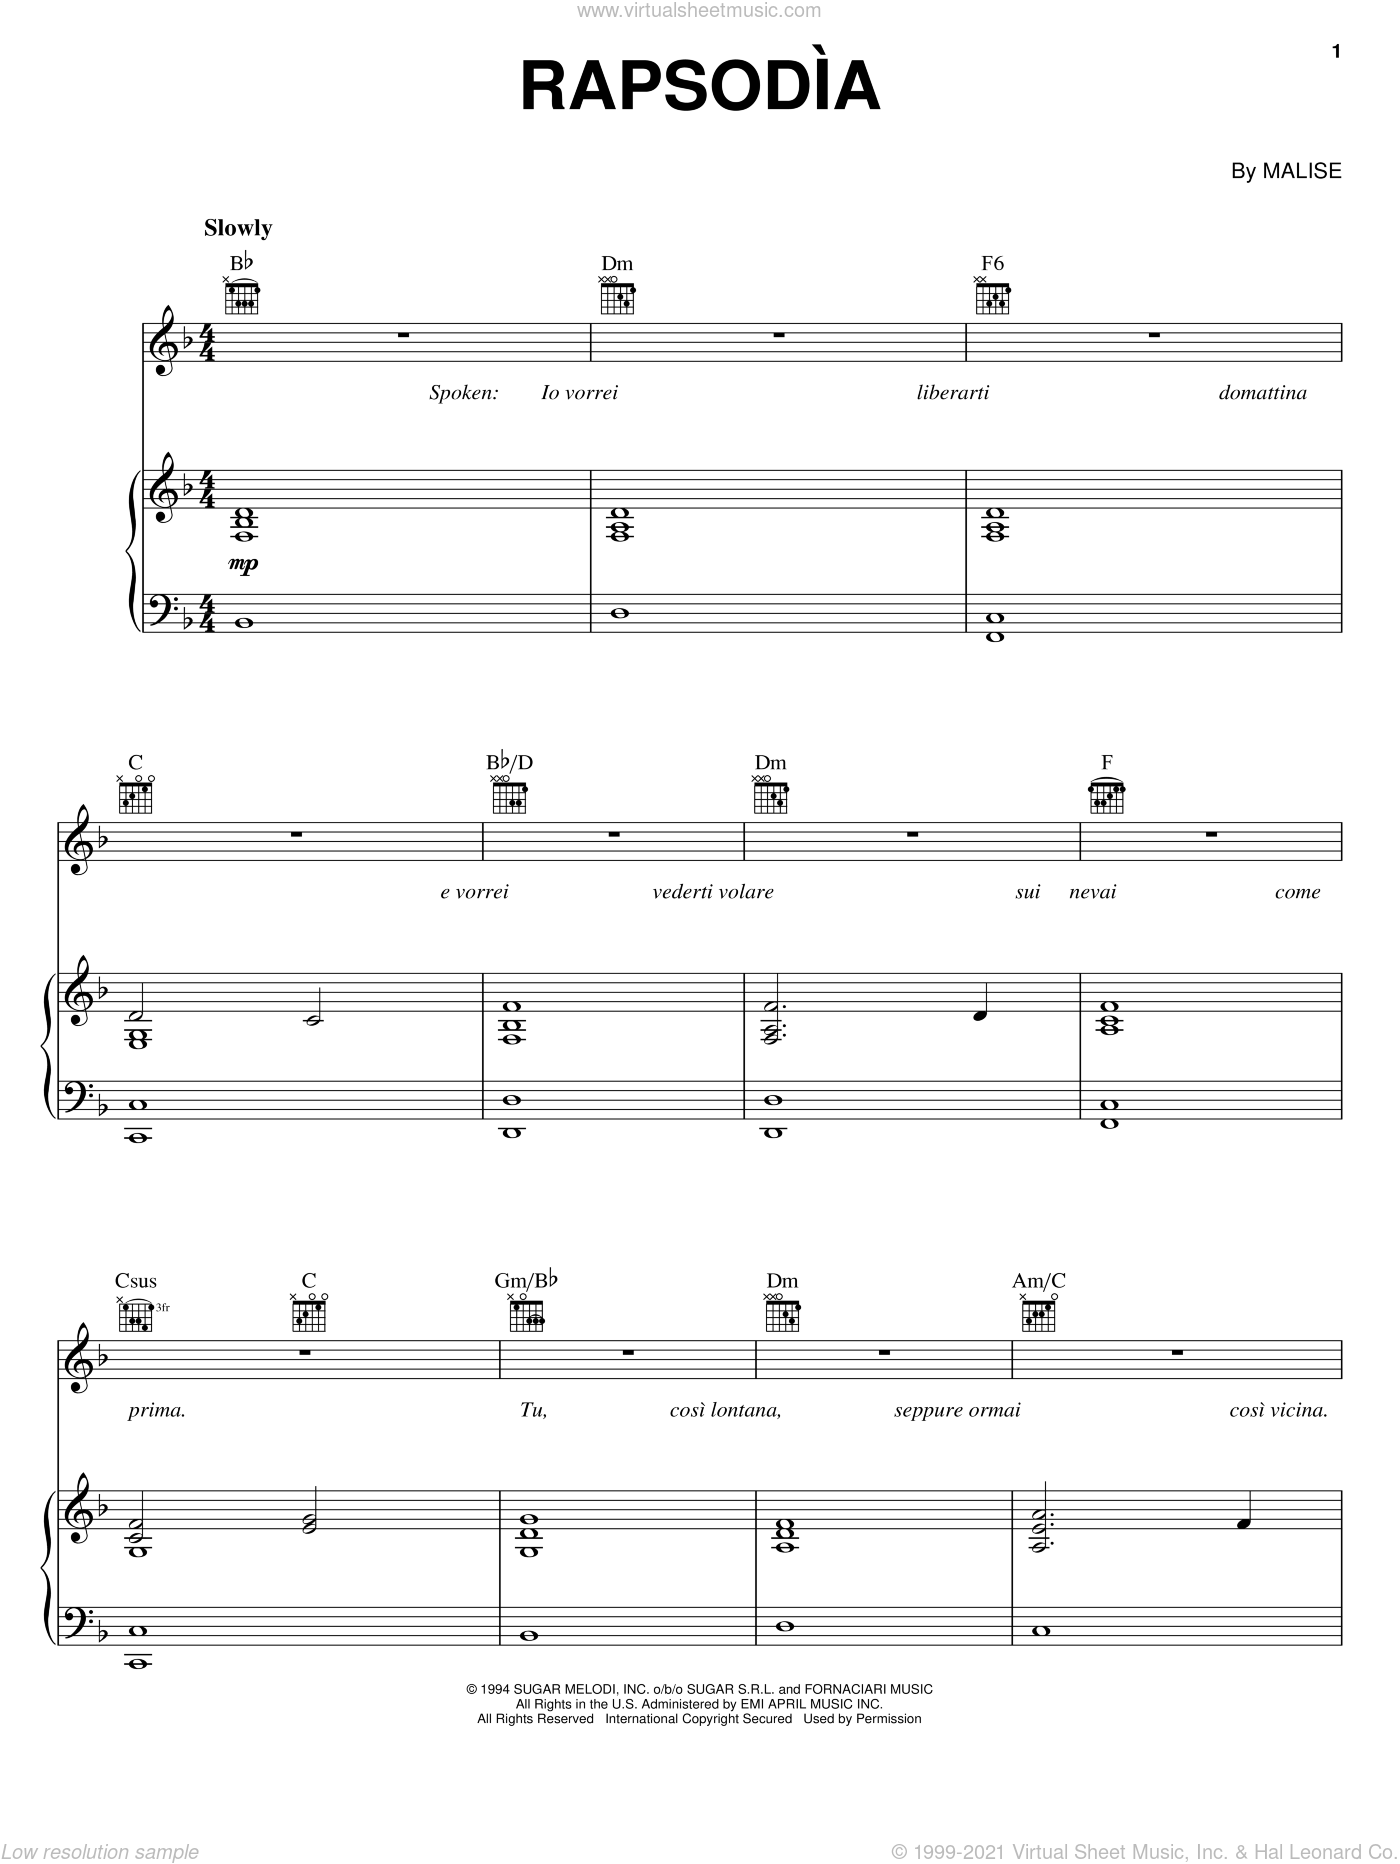 Rapsodia sheet music for voice, piano or guitar by Andrea Bocelli and Malise, classical score, intermediate skill level